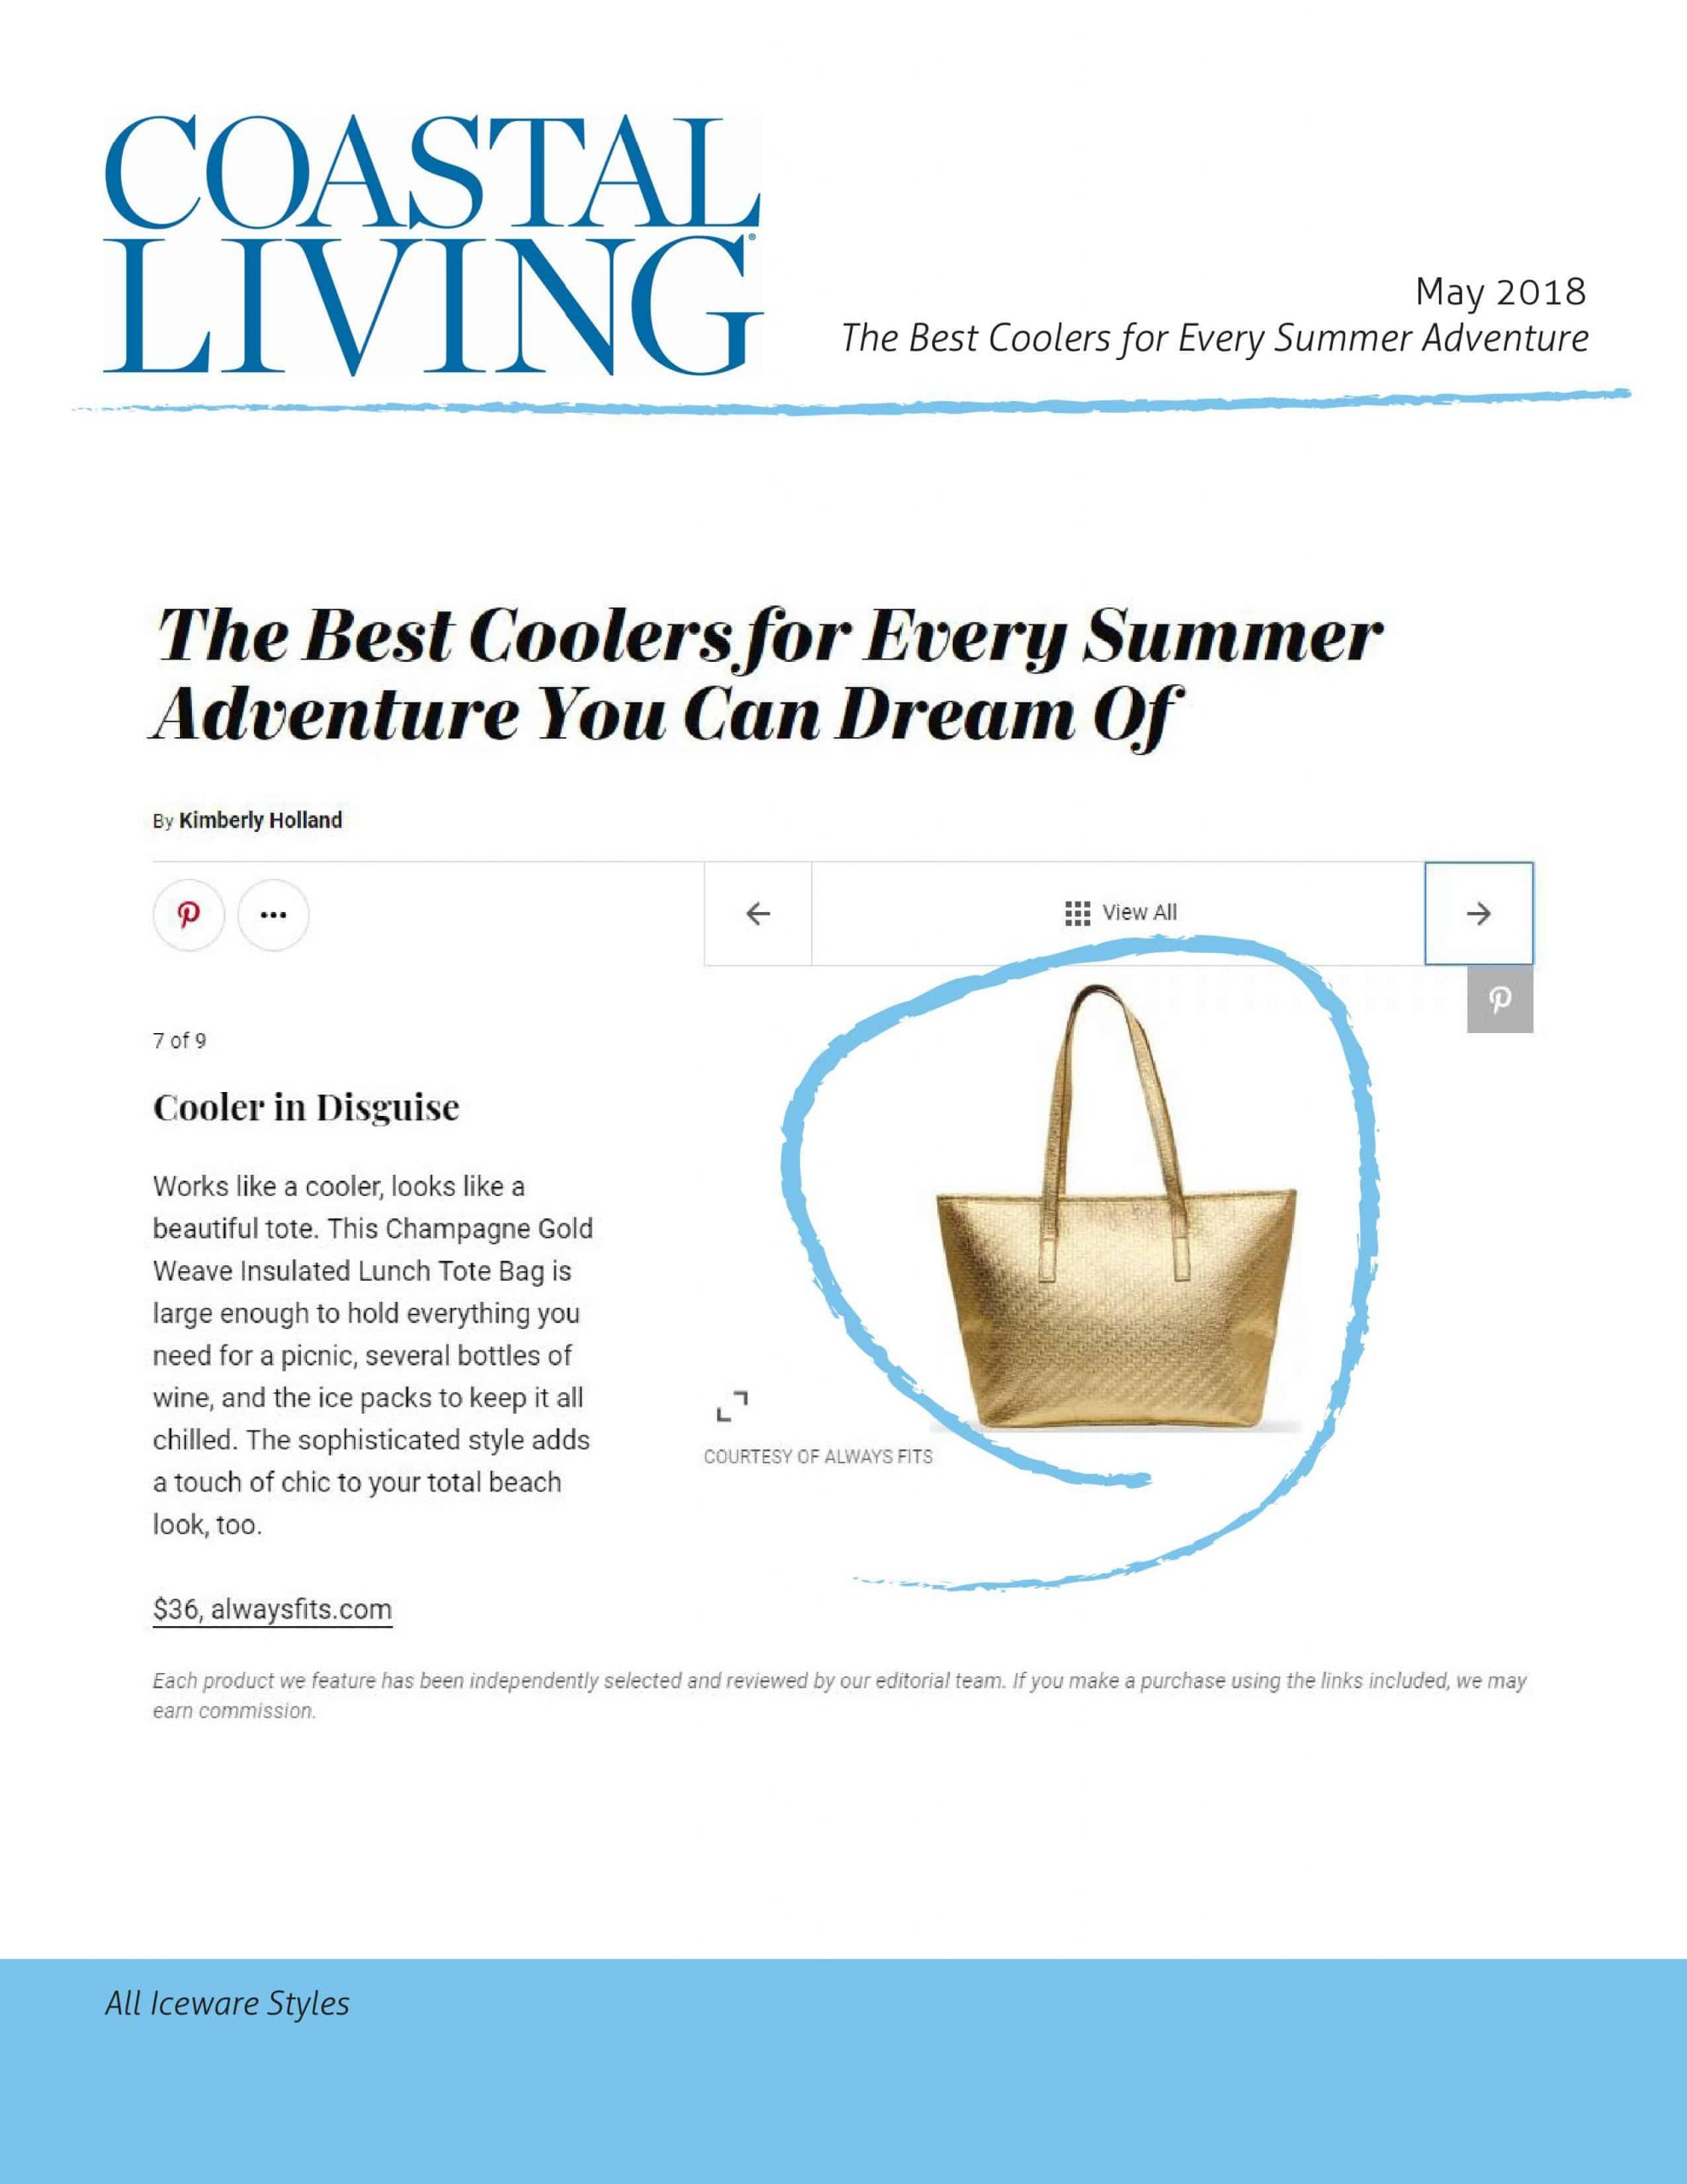 Coastal Living May 2018